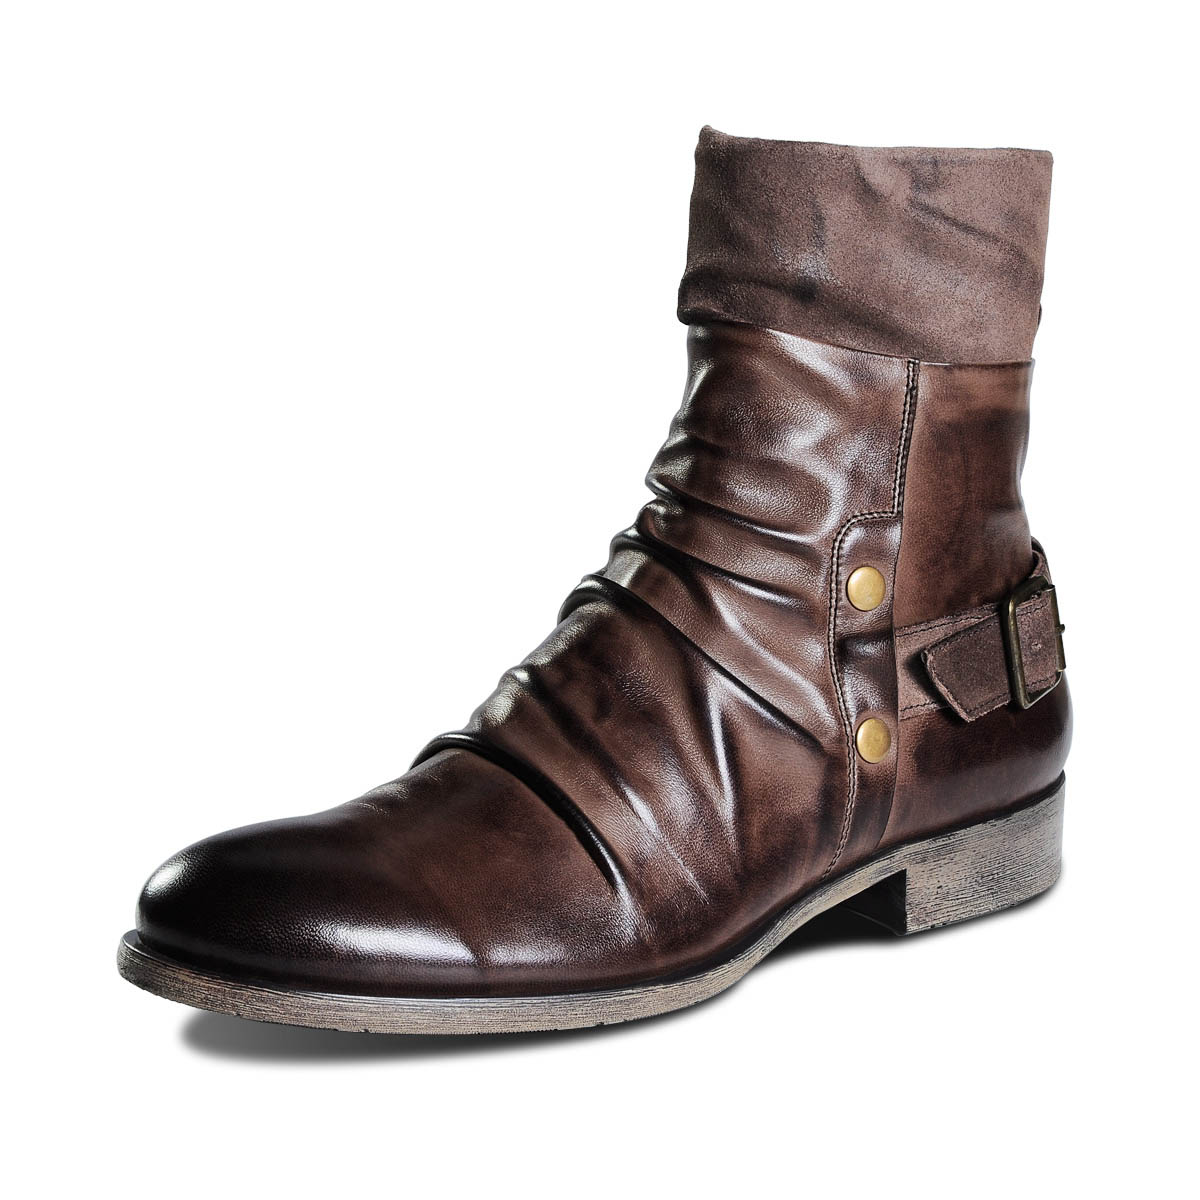 Mens Leather Dress Boots Kq1uVcgy